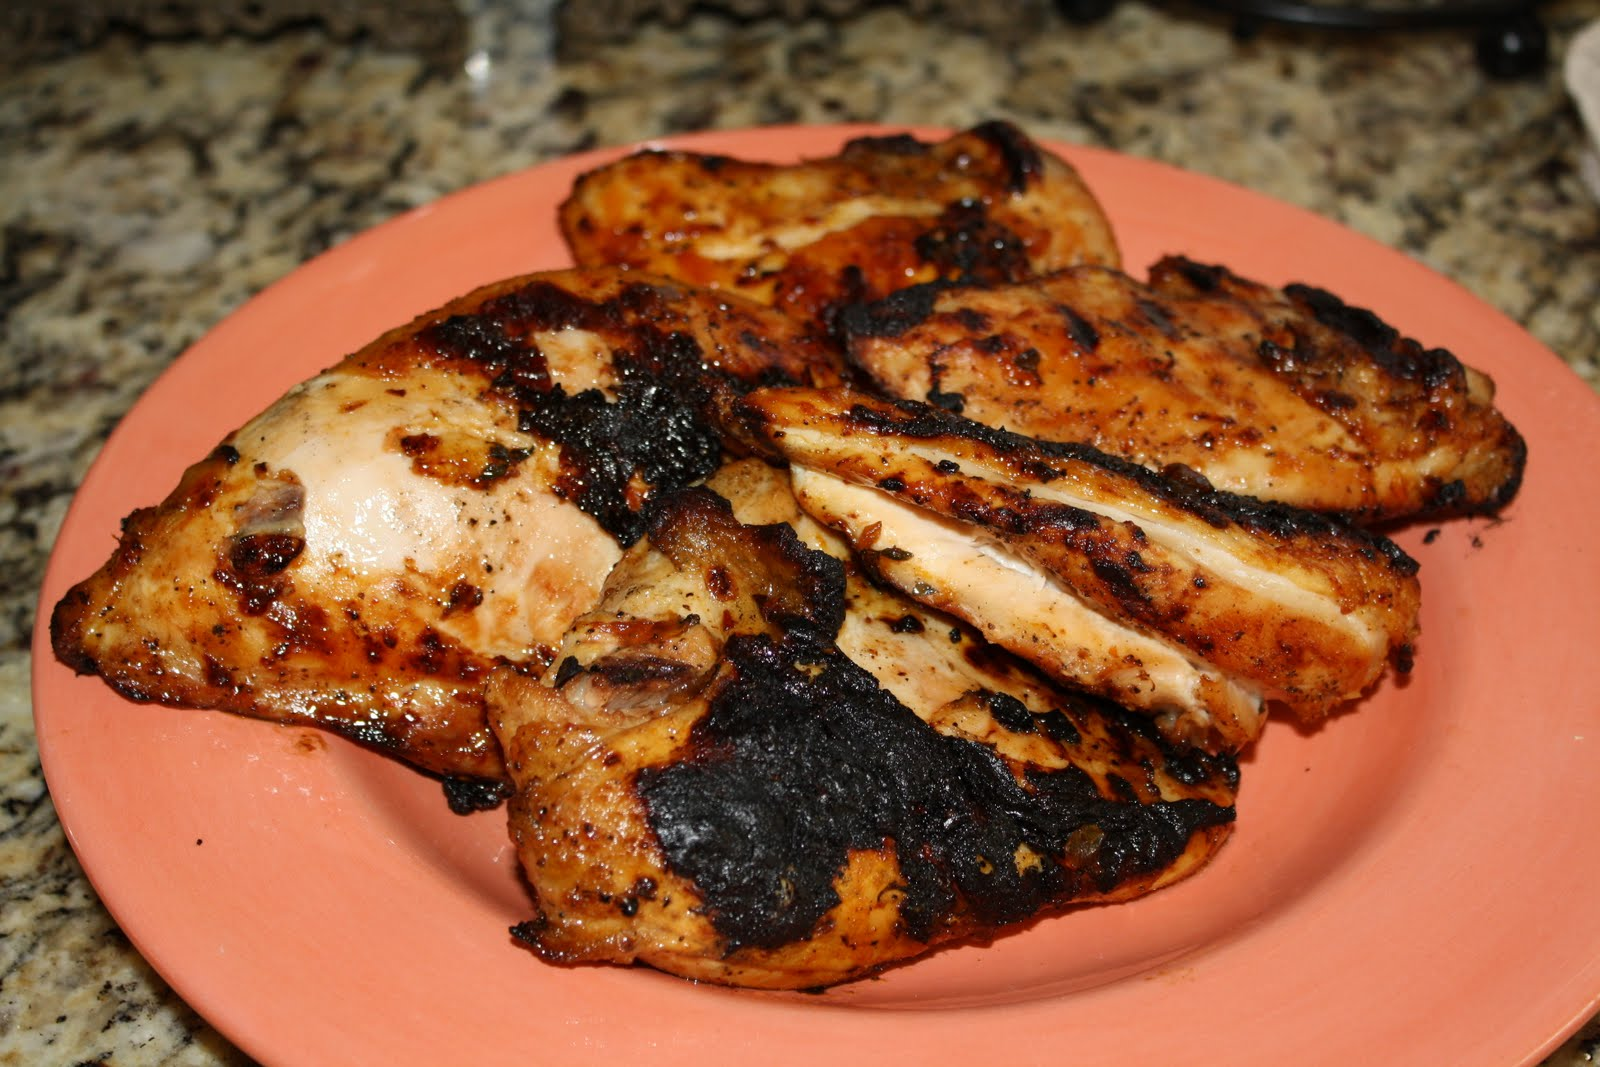 Seasoned with Love: Orange Chipotle Grilled Chicken Breasts